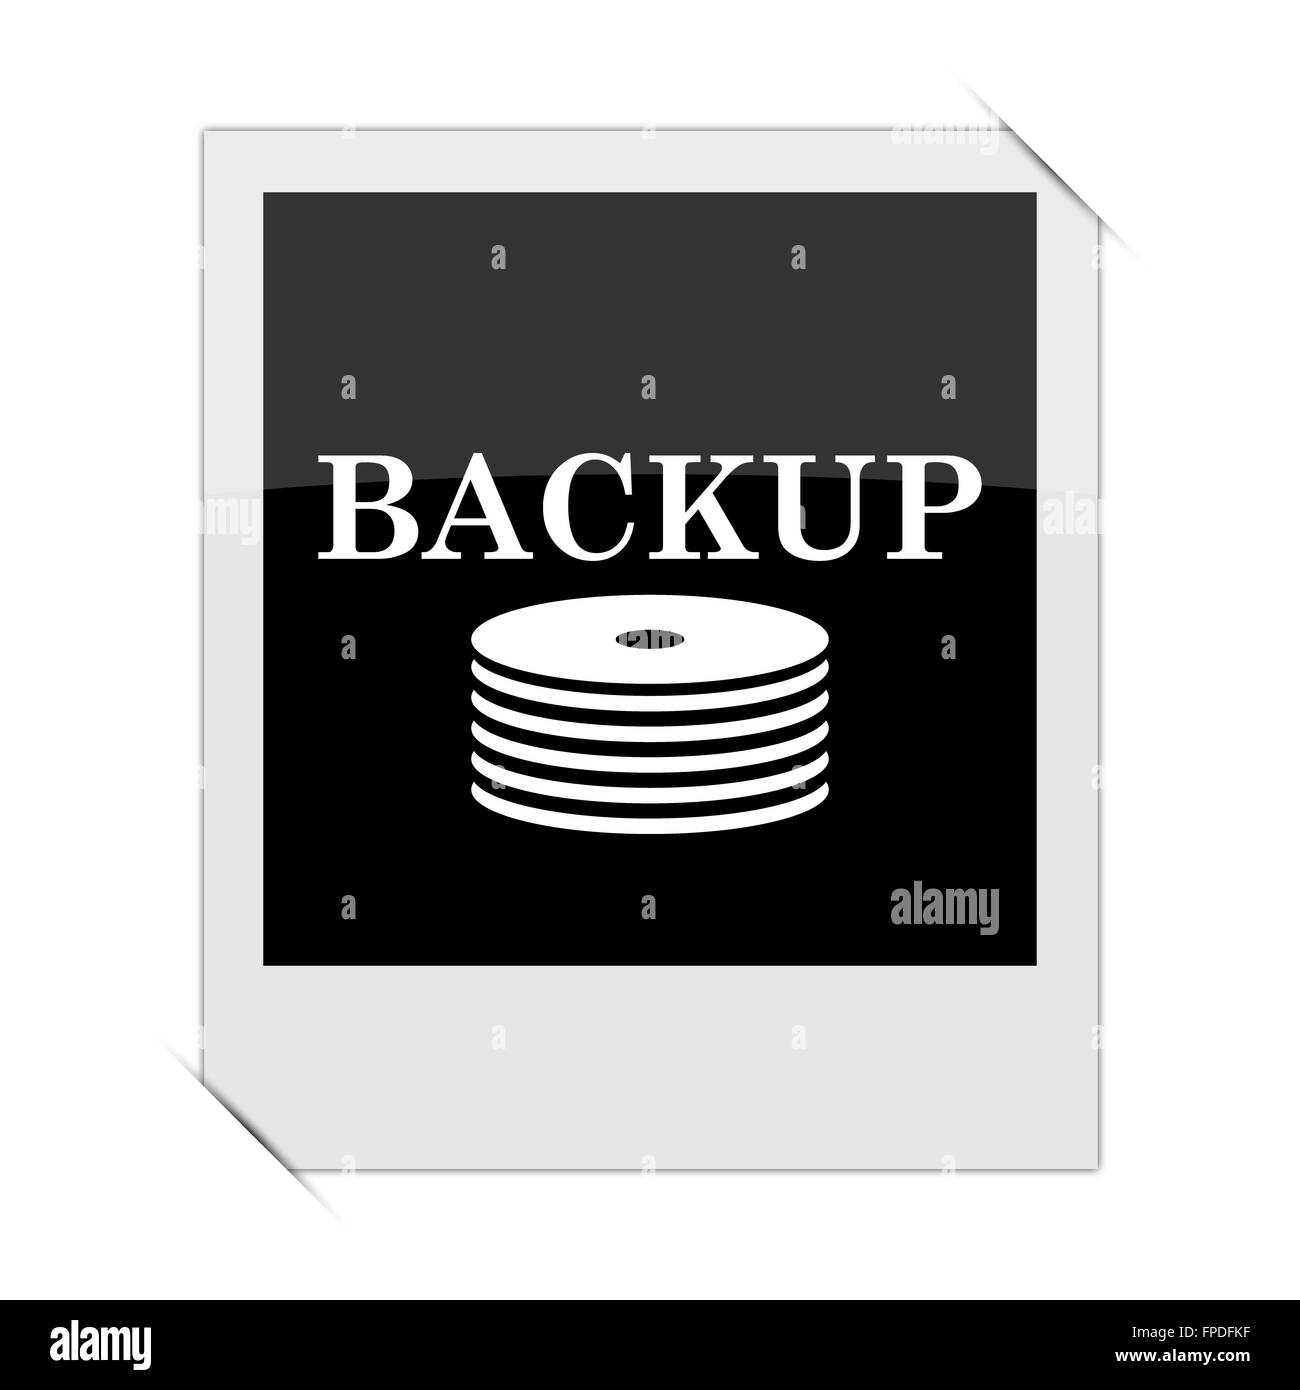 Restore Restoring Black and White Stock Photos & Images - Alamy